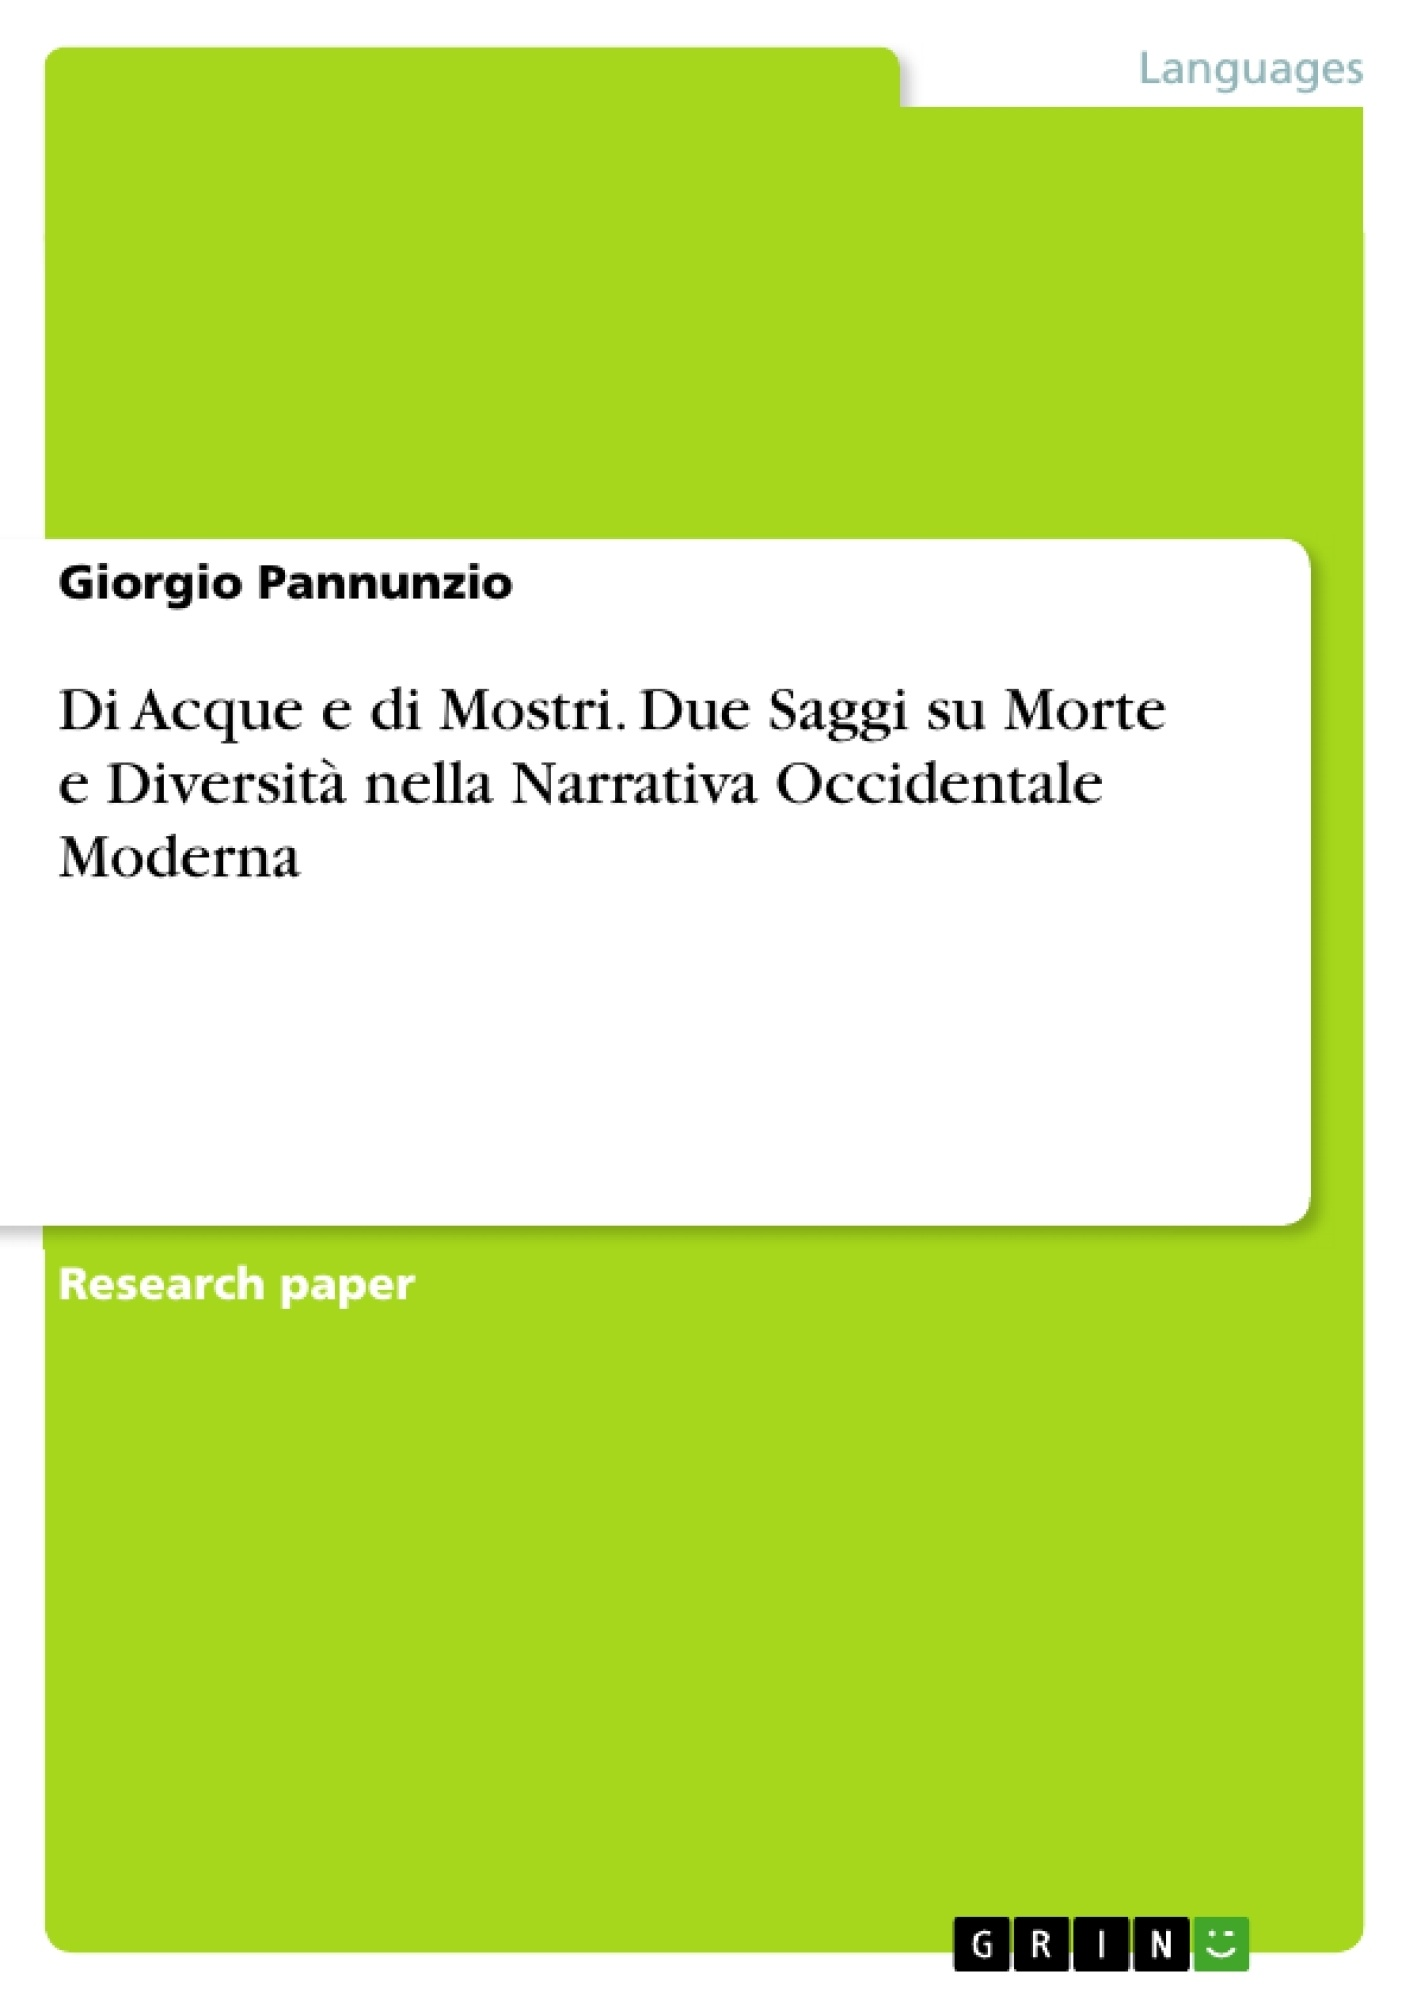 Title: Di Acque e di Mostri. Due Saggi su Morte e Diversità nella Narrativa Occidentale Moderna